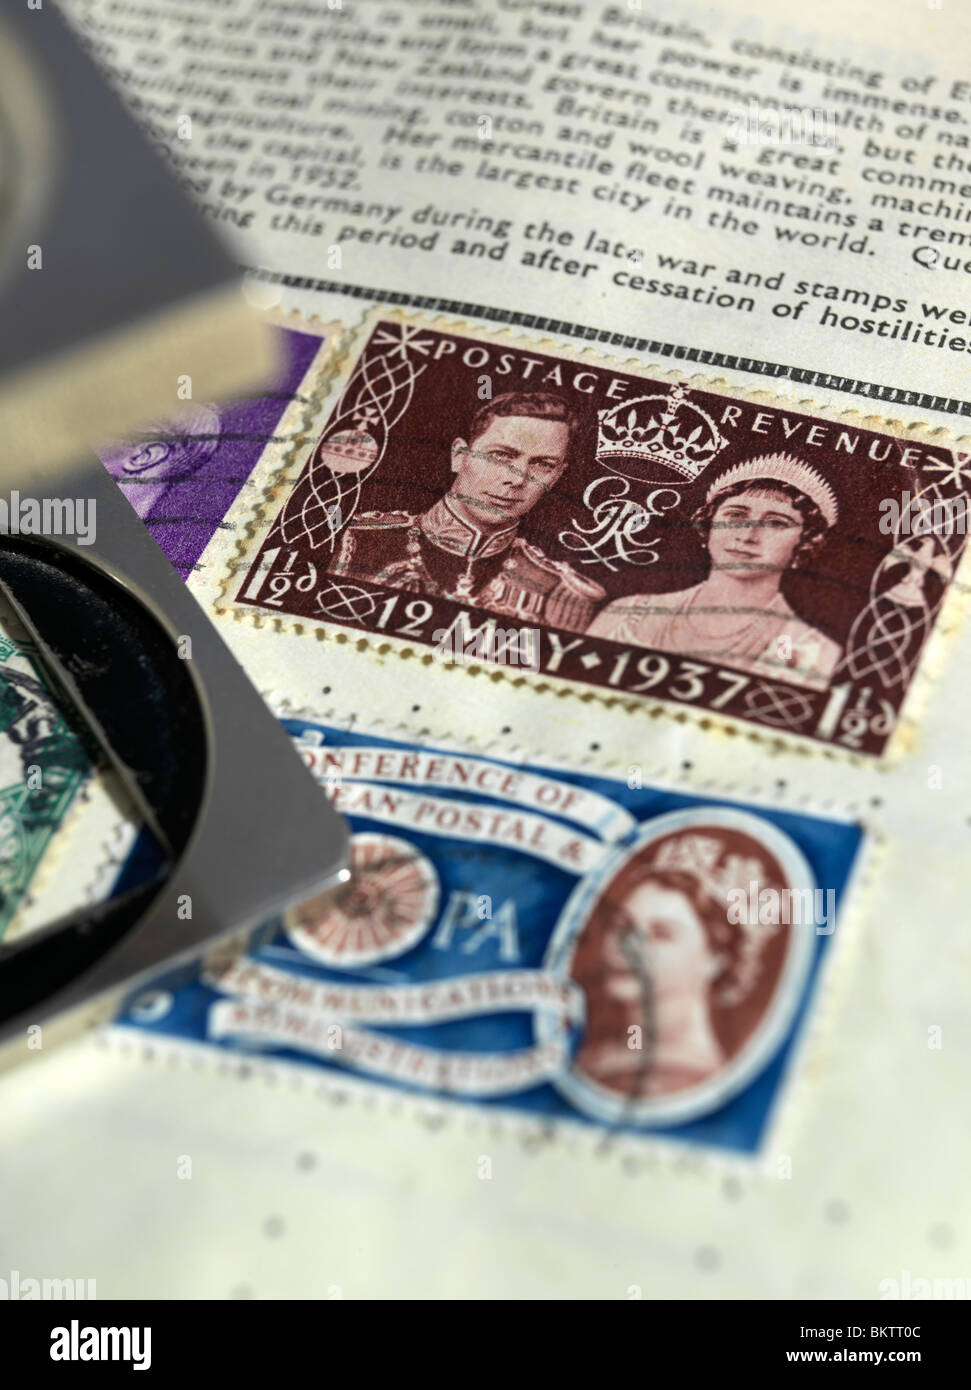 Old stamp in album Celebrating the Coronation of King George VI at Westminster Abbey on 12th May, 1937 - Stock Image